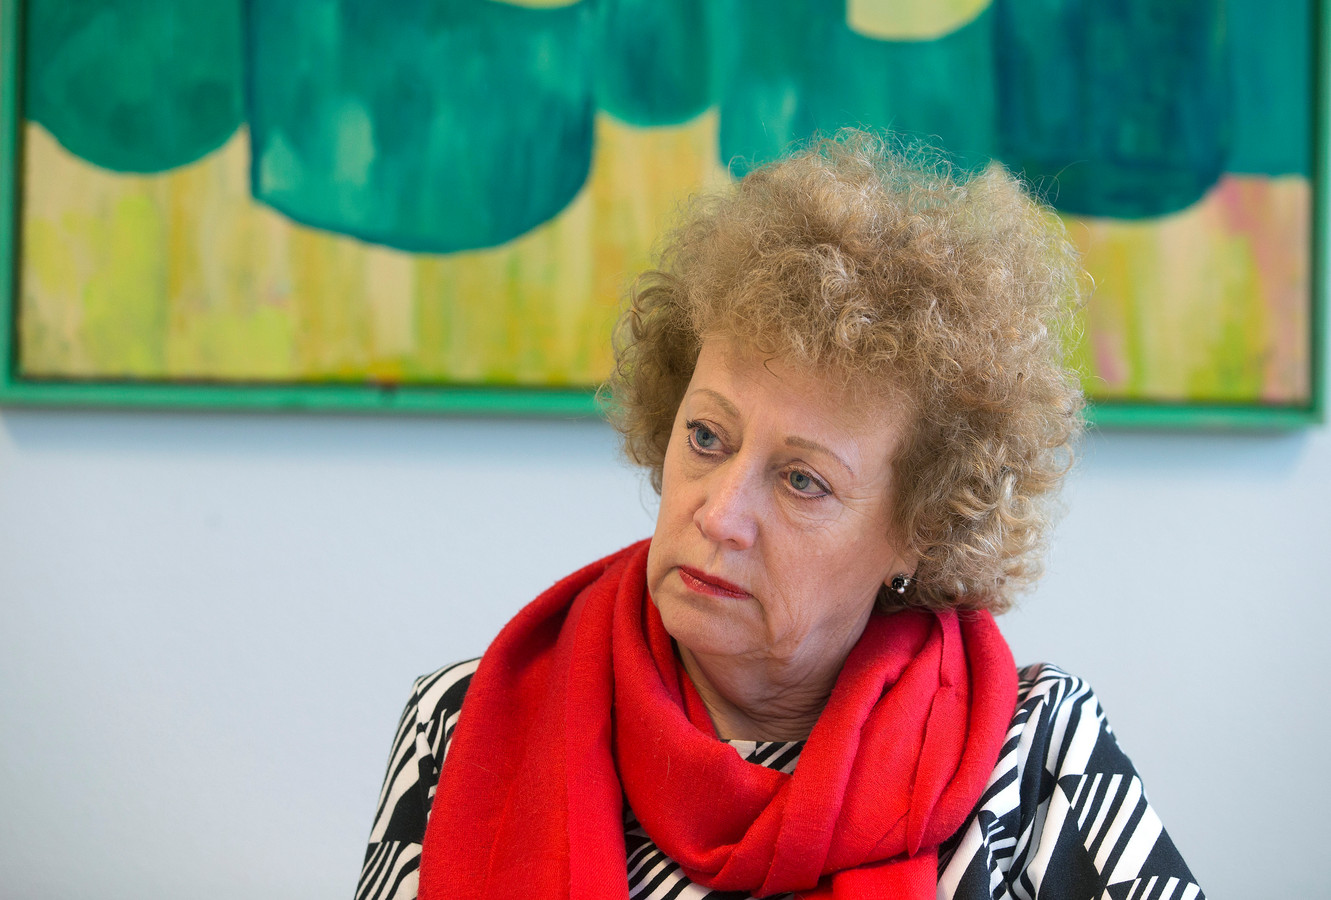 Betty Talstra is de directeur van sociale dienst Laborijn.